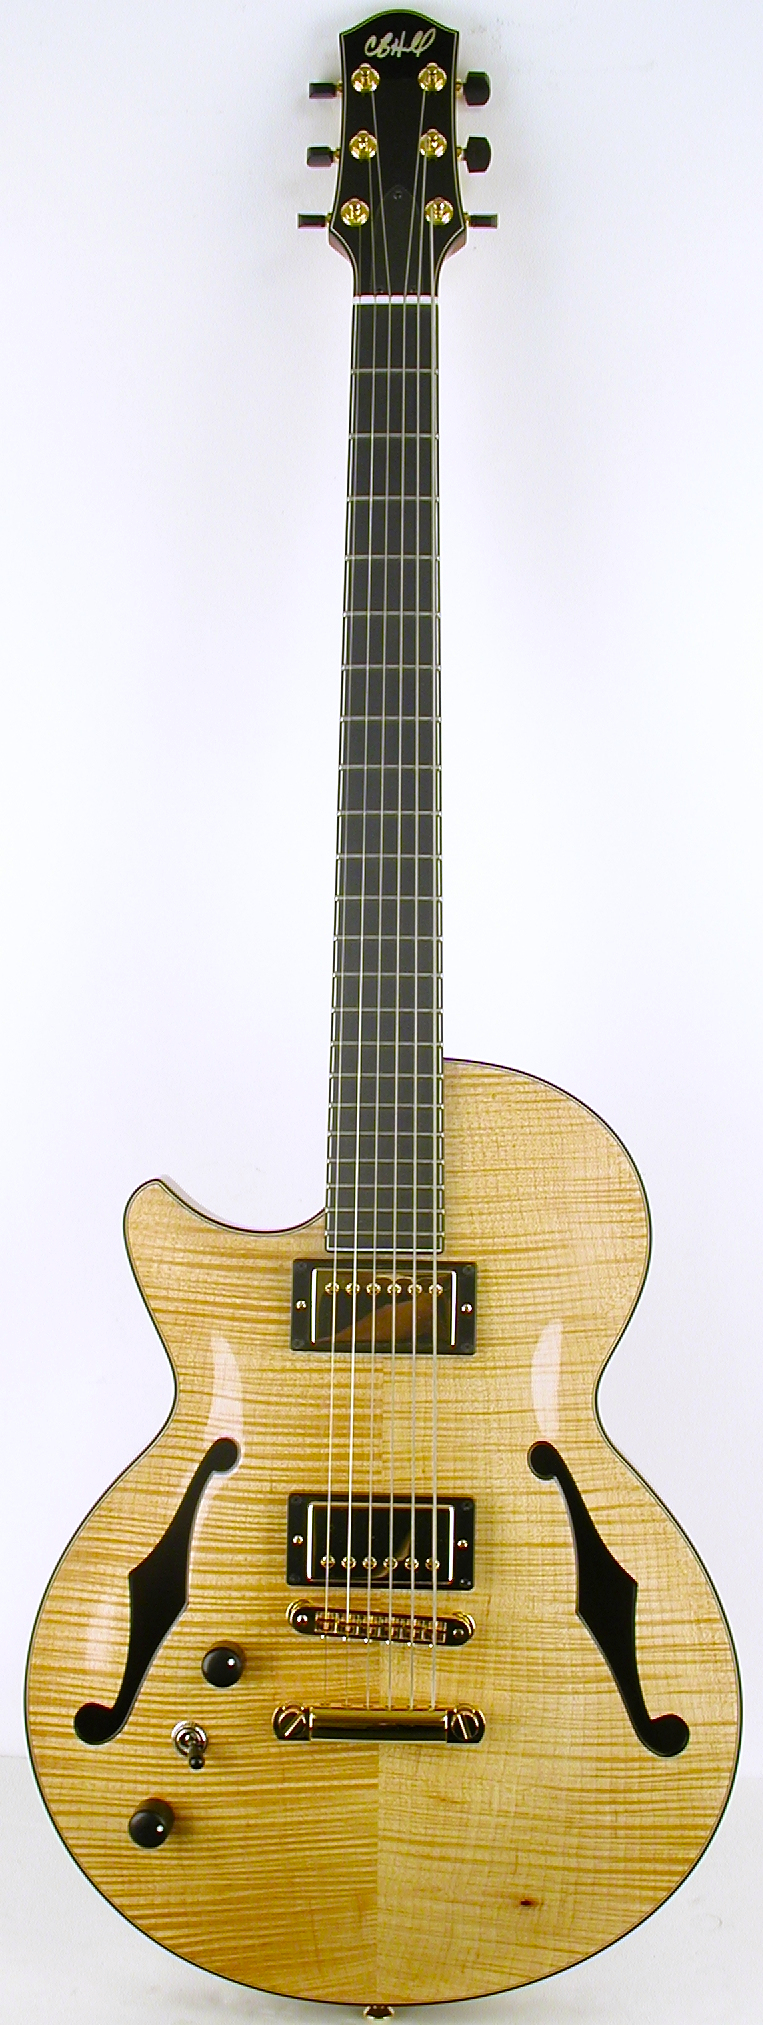 A rare lefty 2-5-1 in natural flame maple